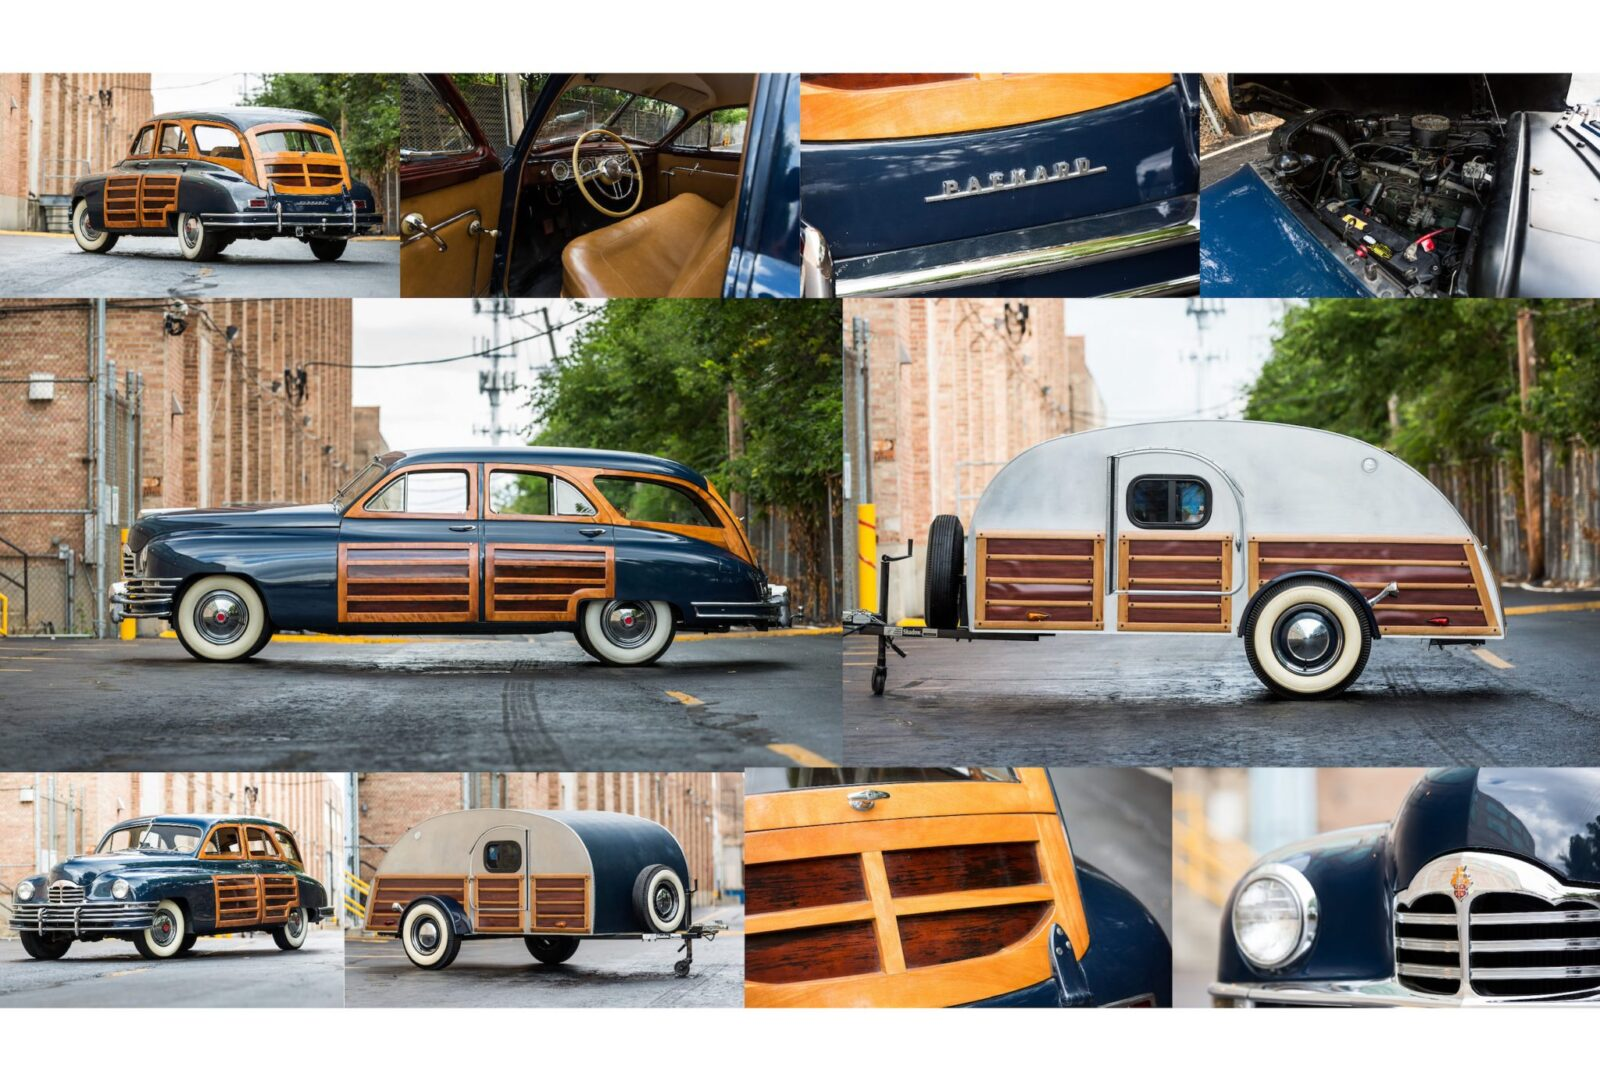 Packard Hero Image 1600x1077 - 1948 Packard Eight Station Sedan & Teardrop Camper